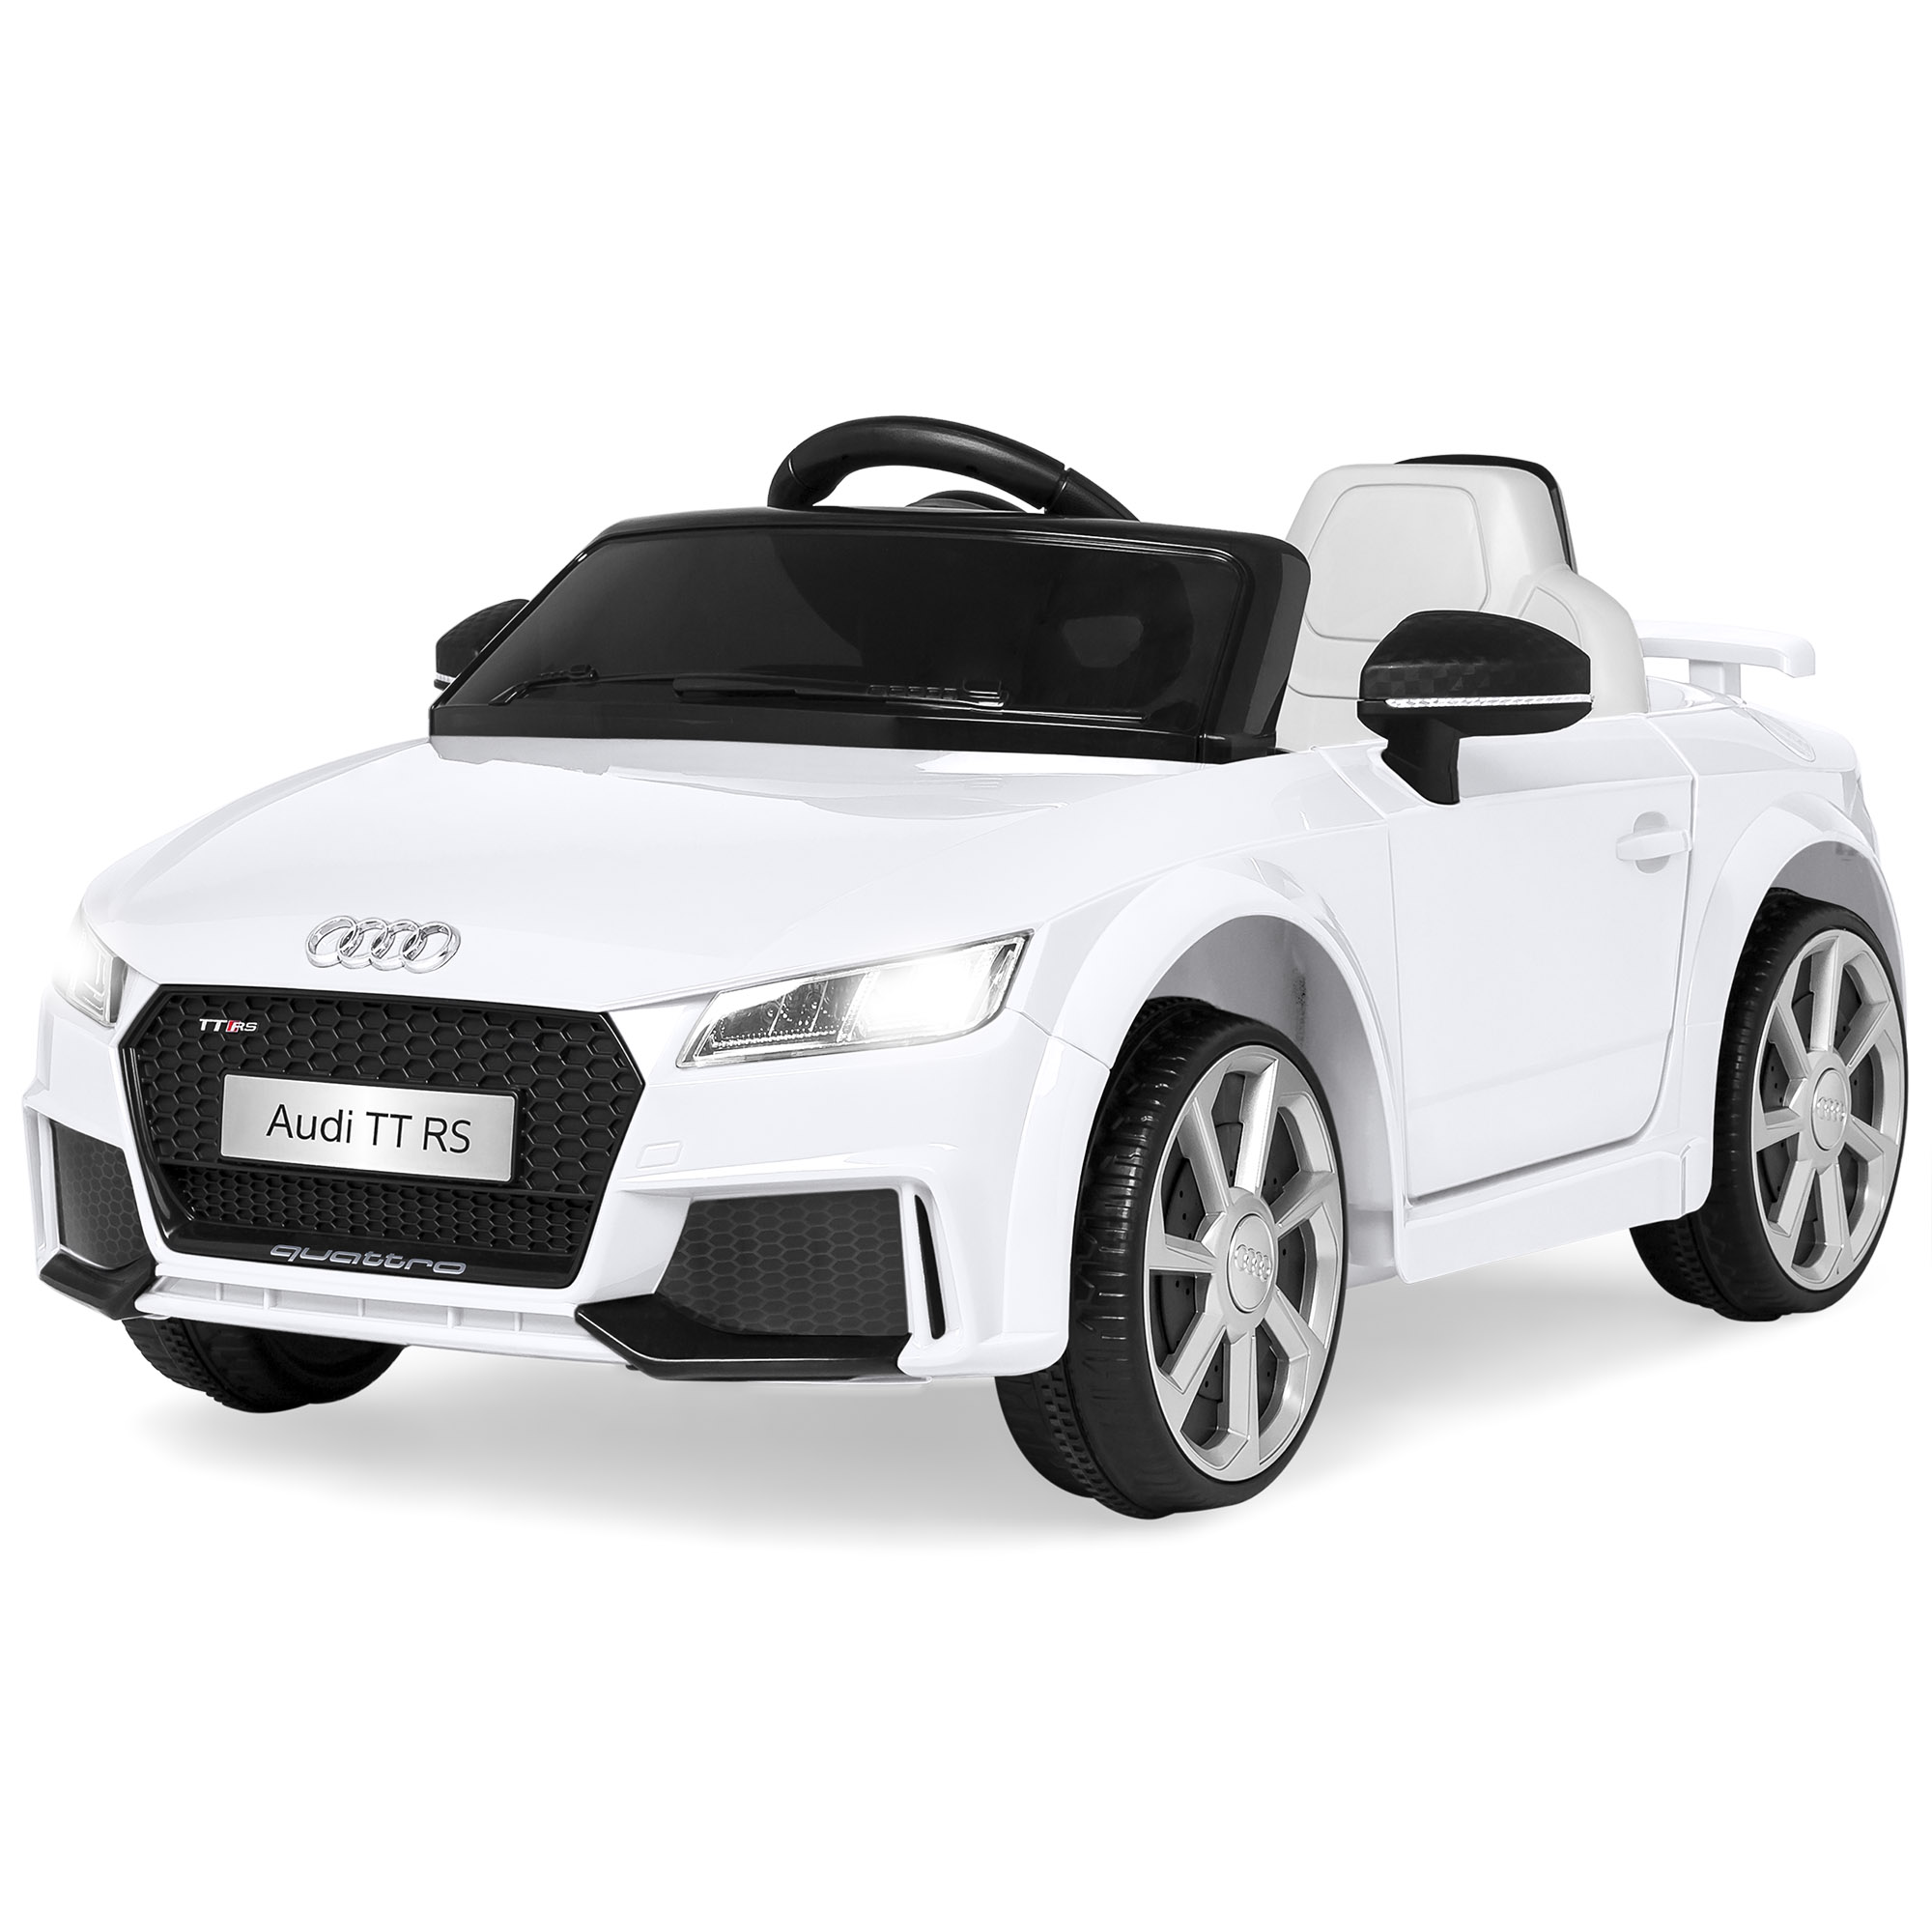 Best Choice Products 6V Kids Licensed Audi TT RS Electric Ride-On Car Toy w/ Parent Control, 2 Speeds, Suspension, AUX Input, Lights, Sounds - Red